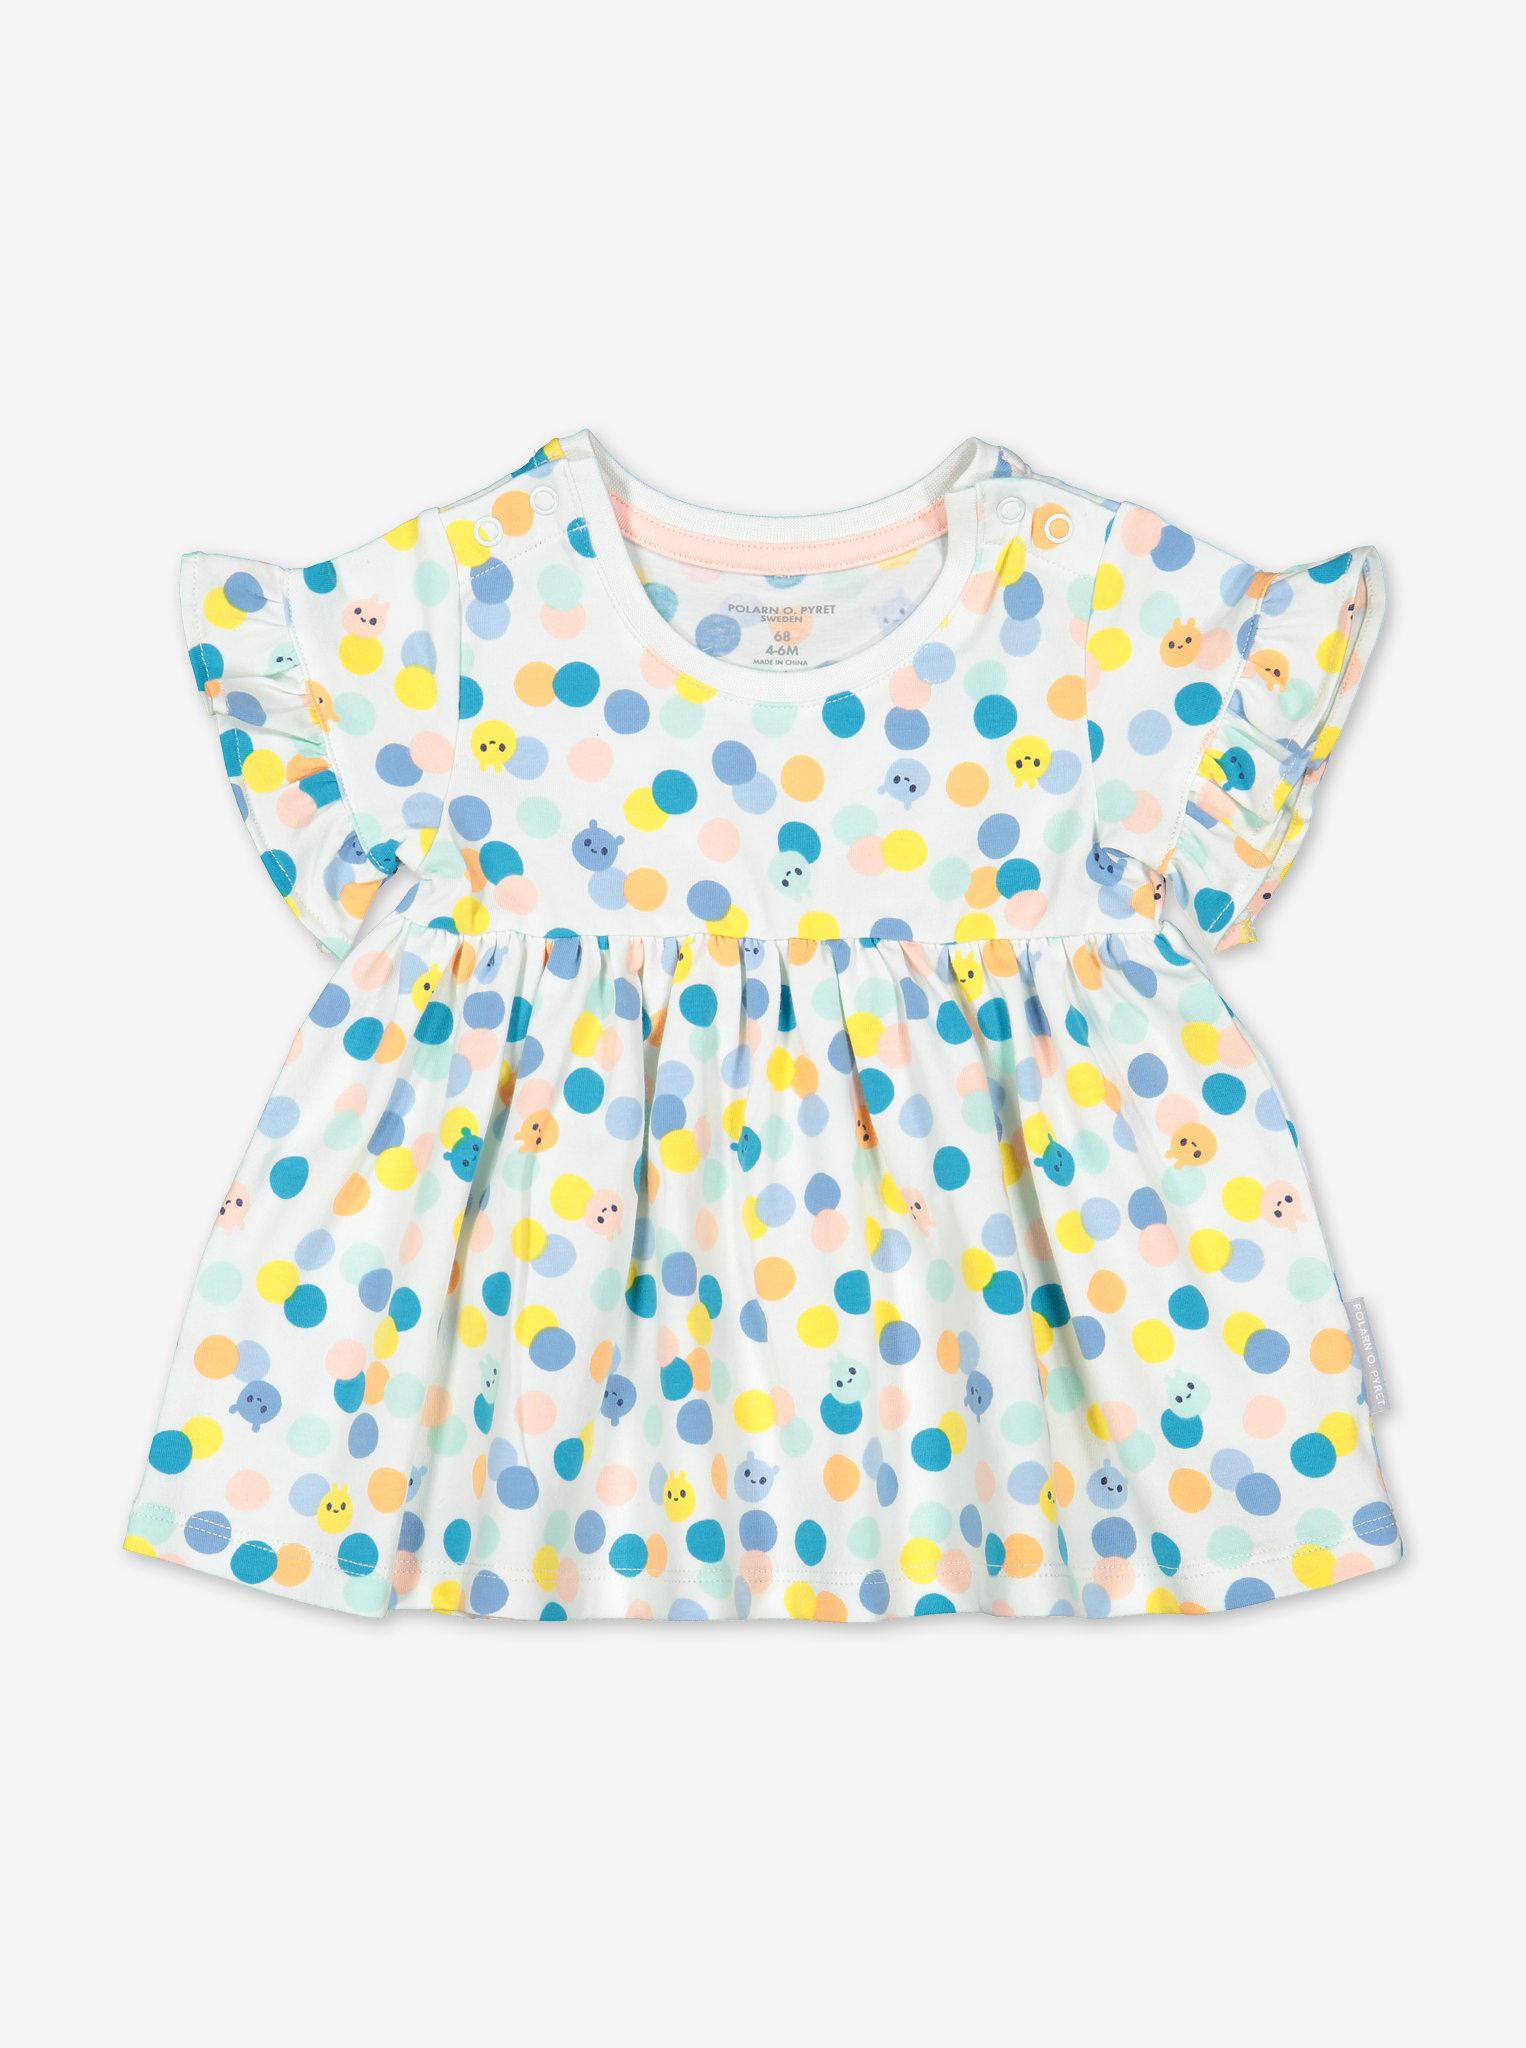 Polka Dot Baby Top-Girl-0-1y-White